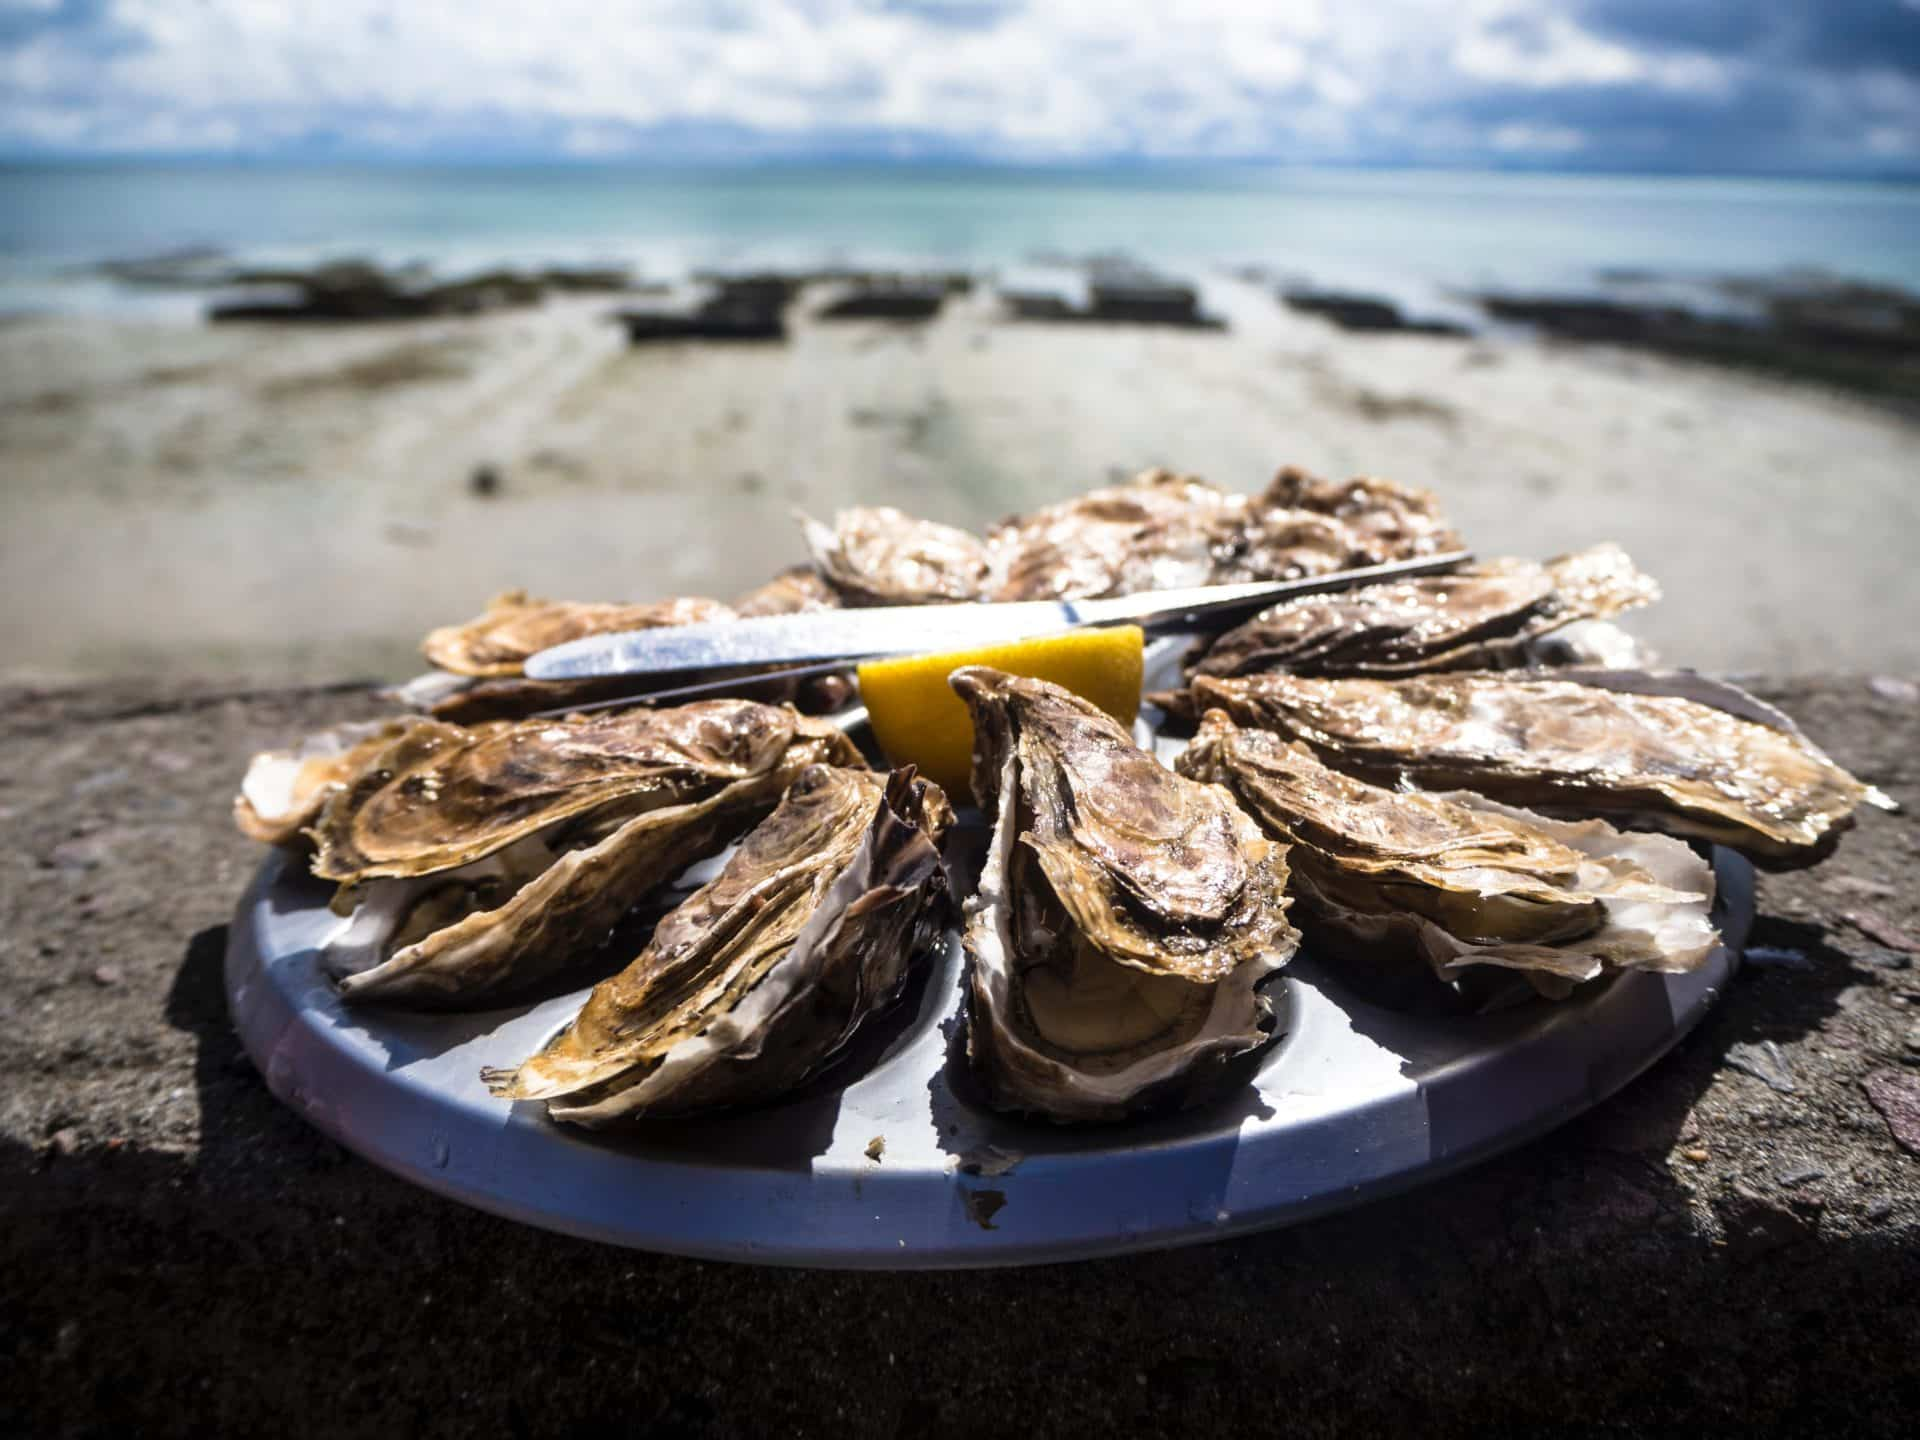 oysters on a plate with lemon and the beach and ocean in the background